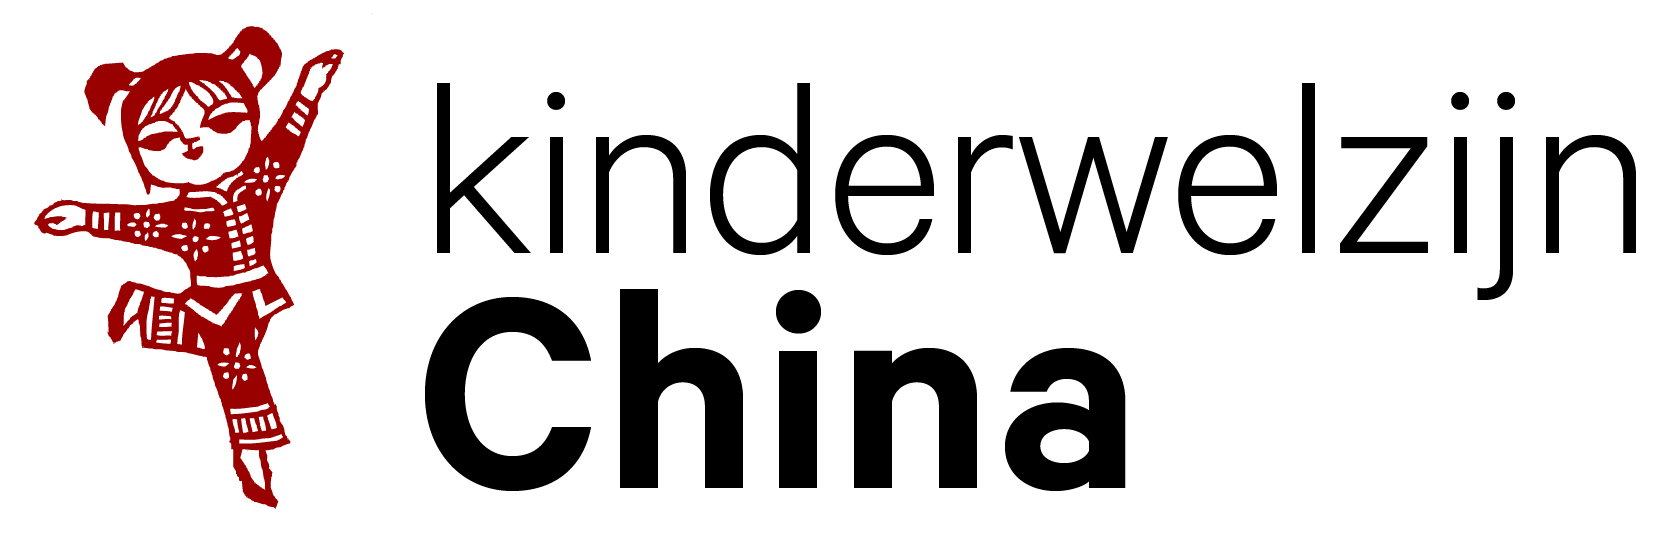 Kinderwelzijn China